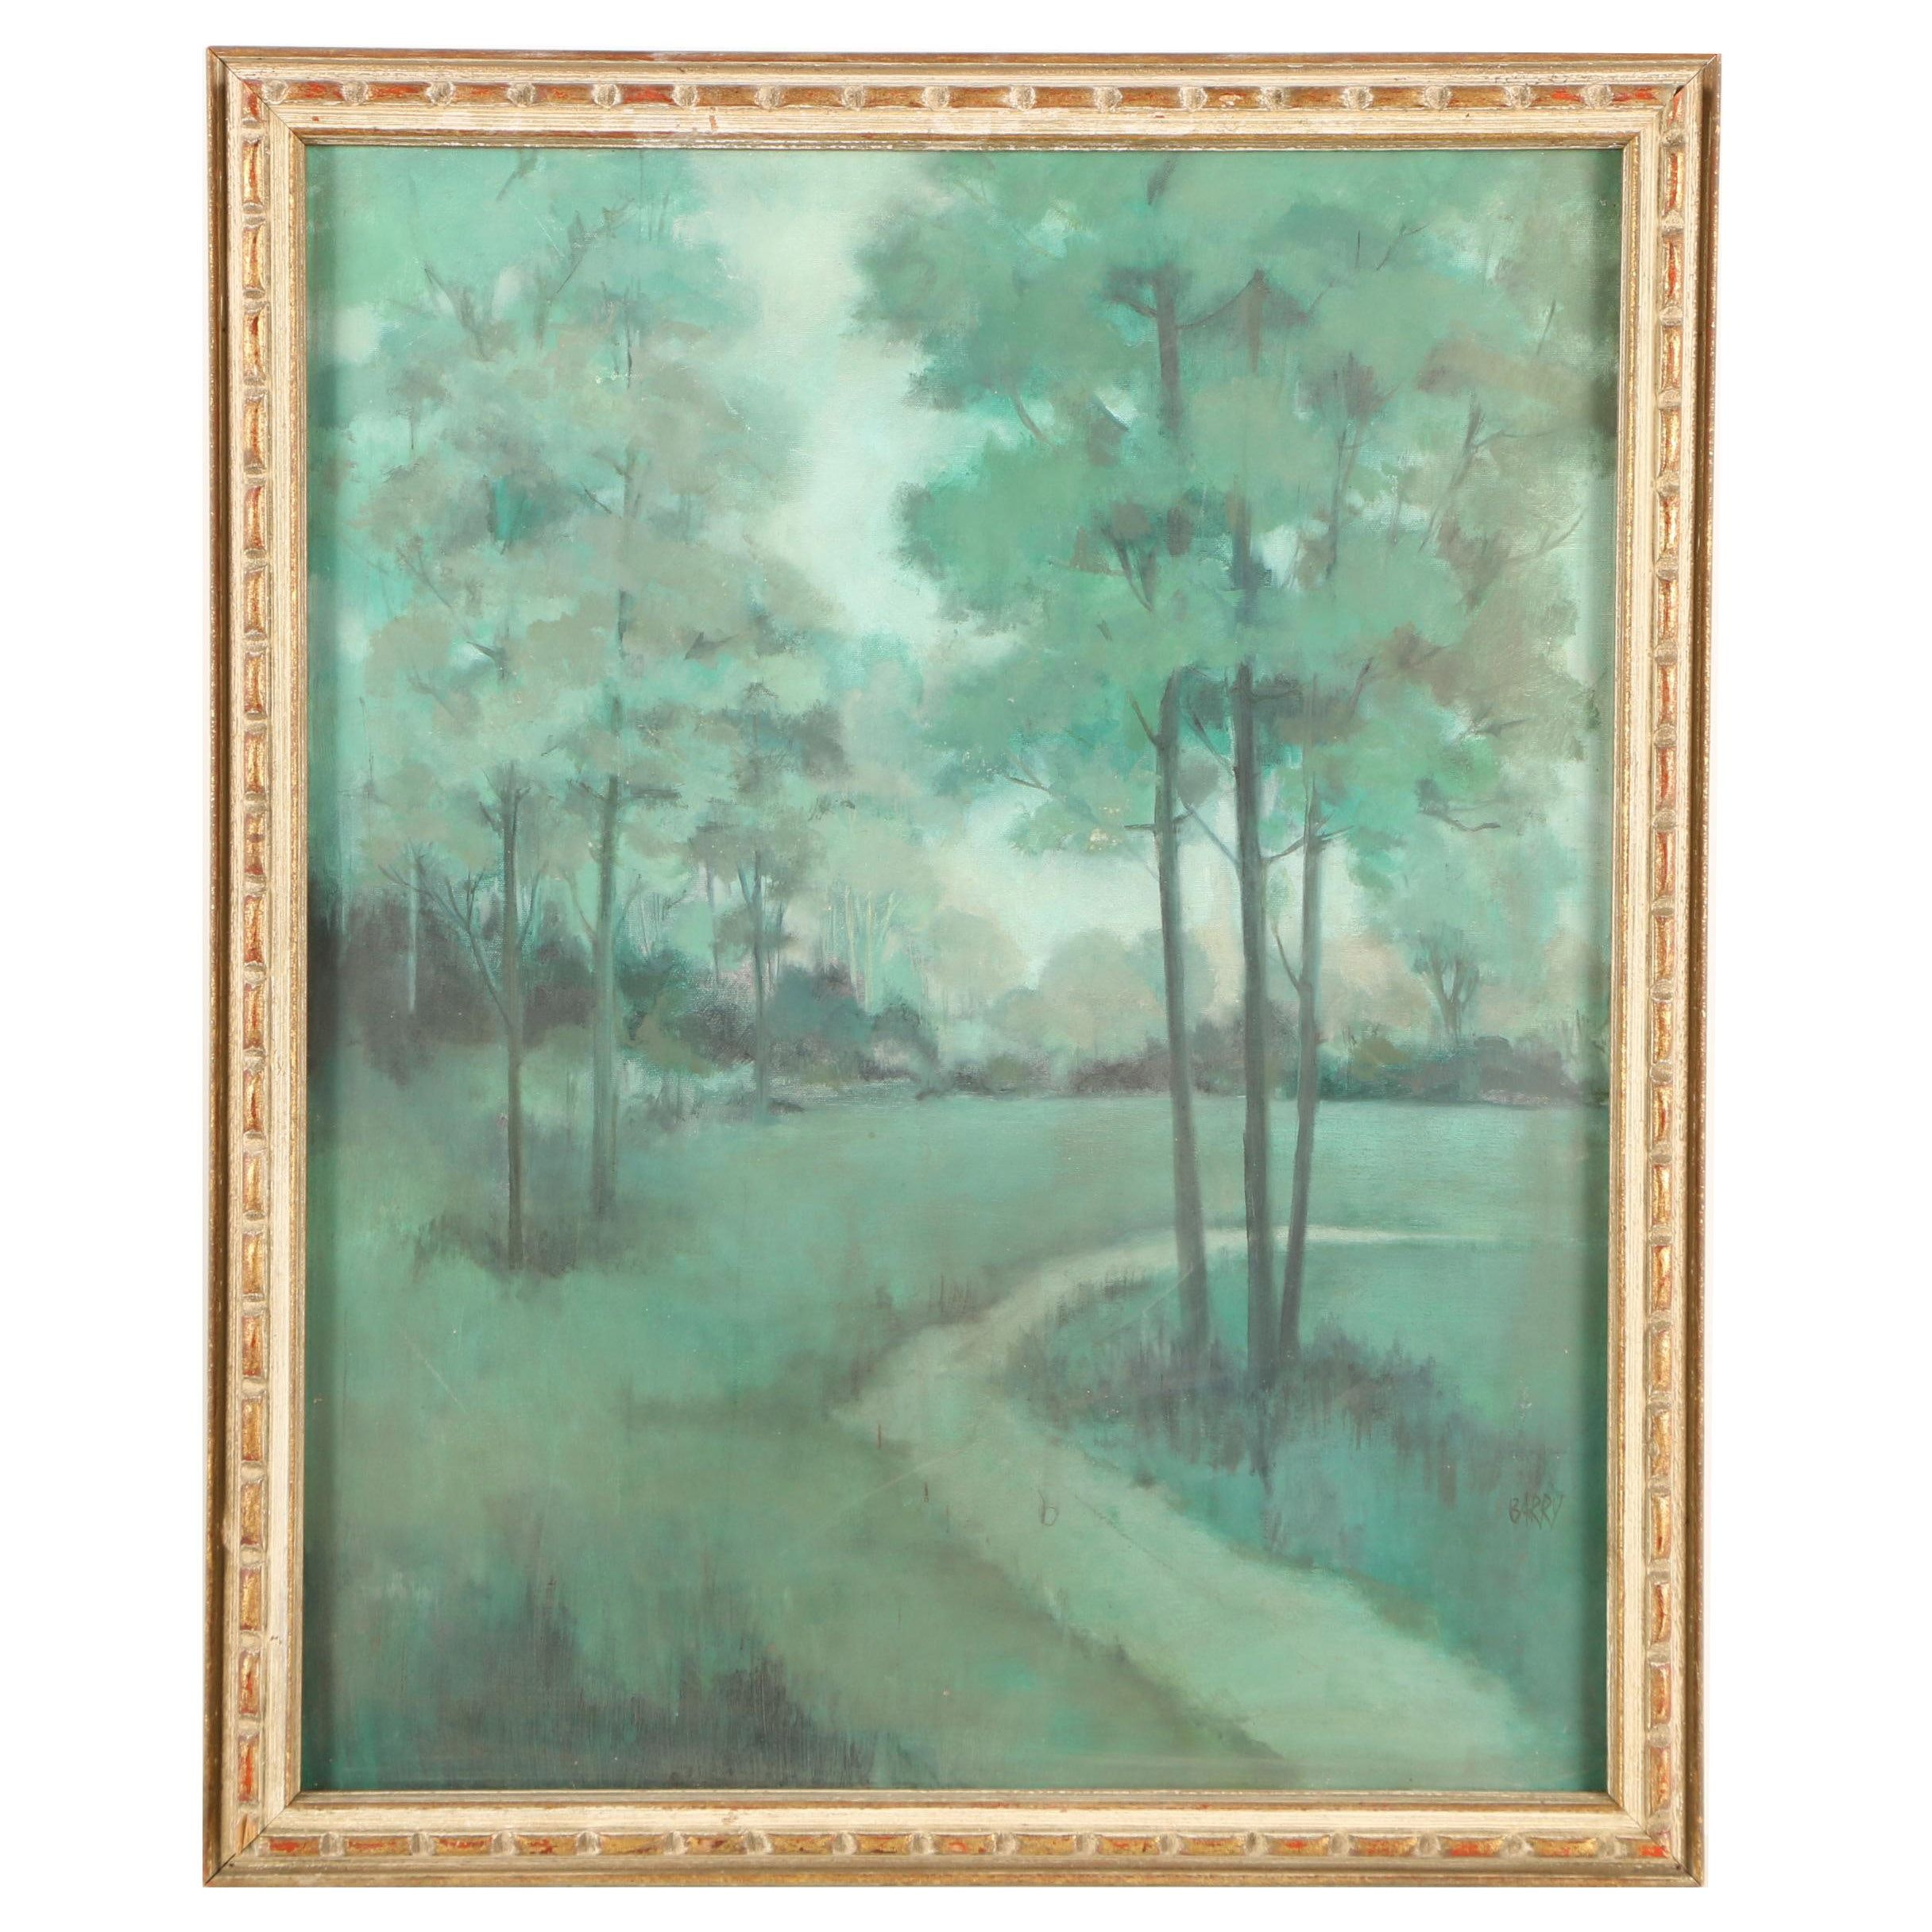 Barry Oil Painting of a Green Landscape